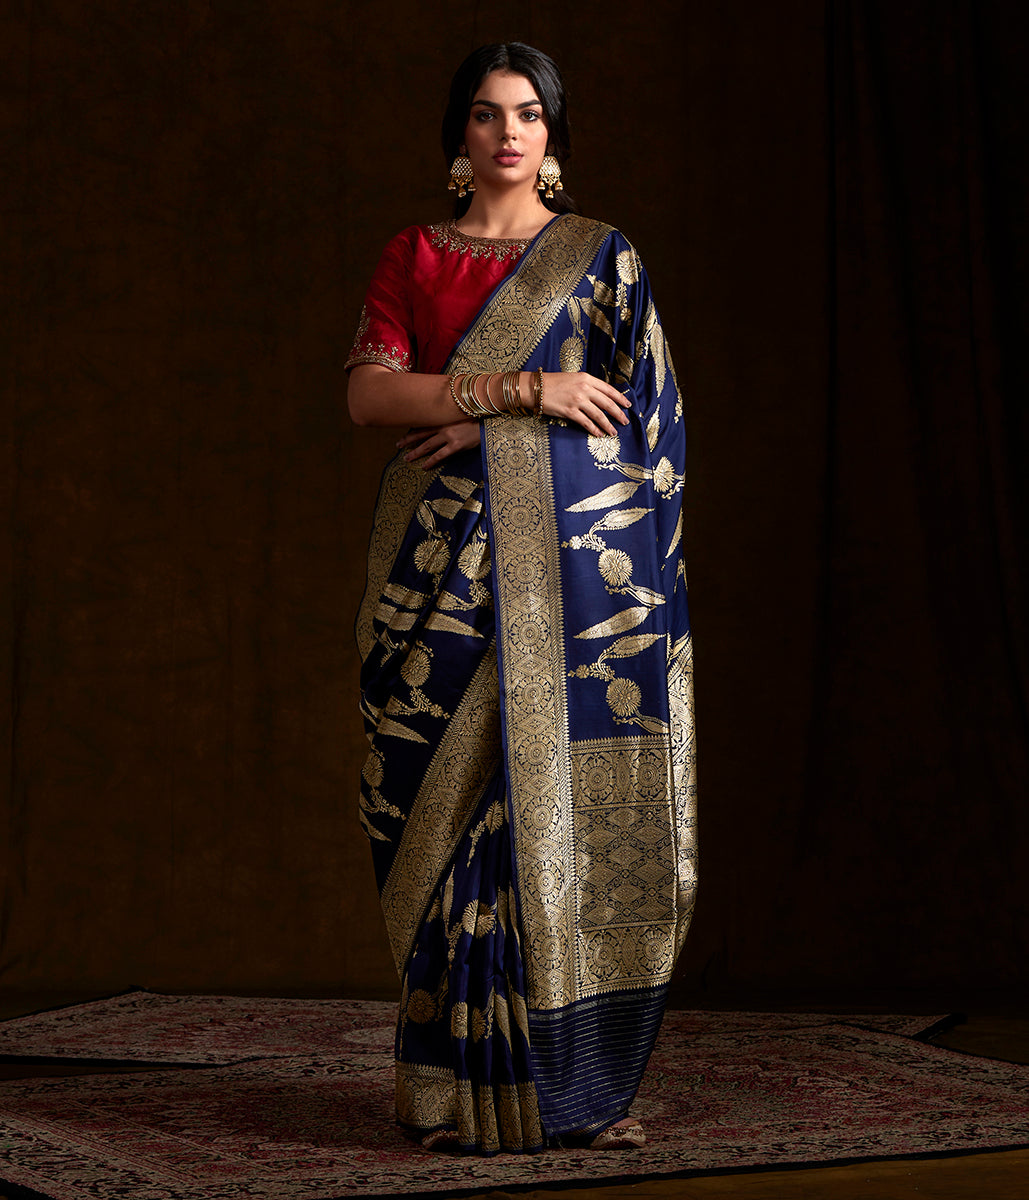 Dark Blue kadhwa jangla with intricate floral jaal